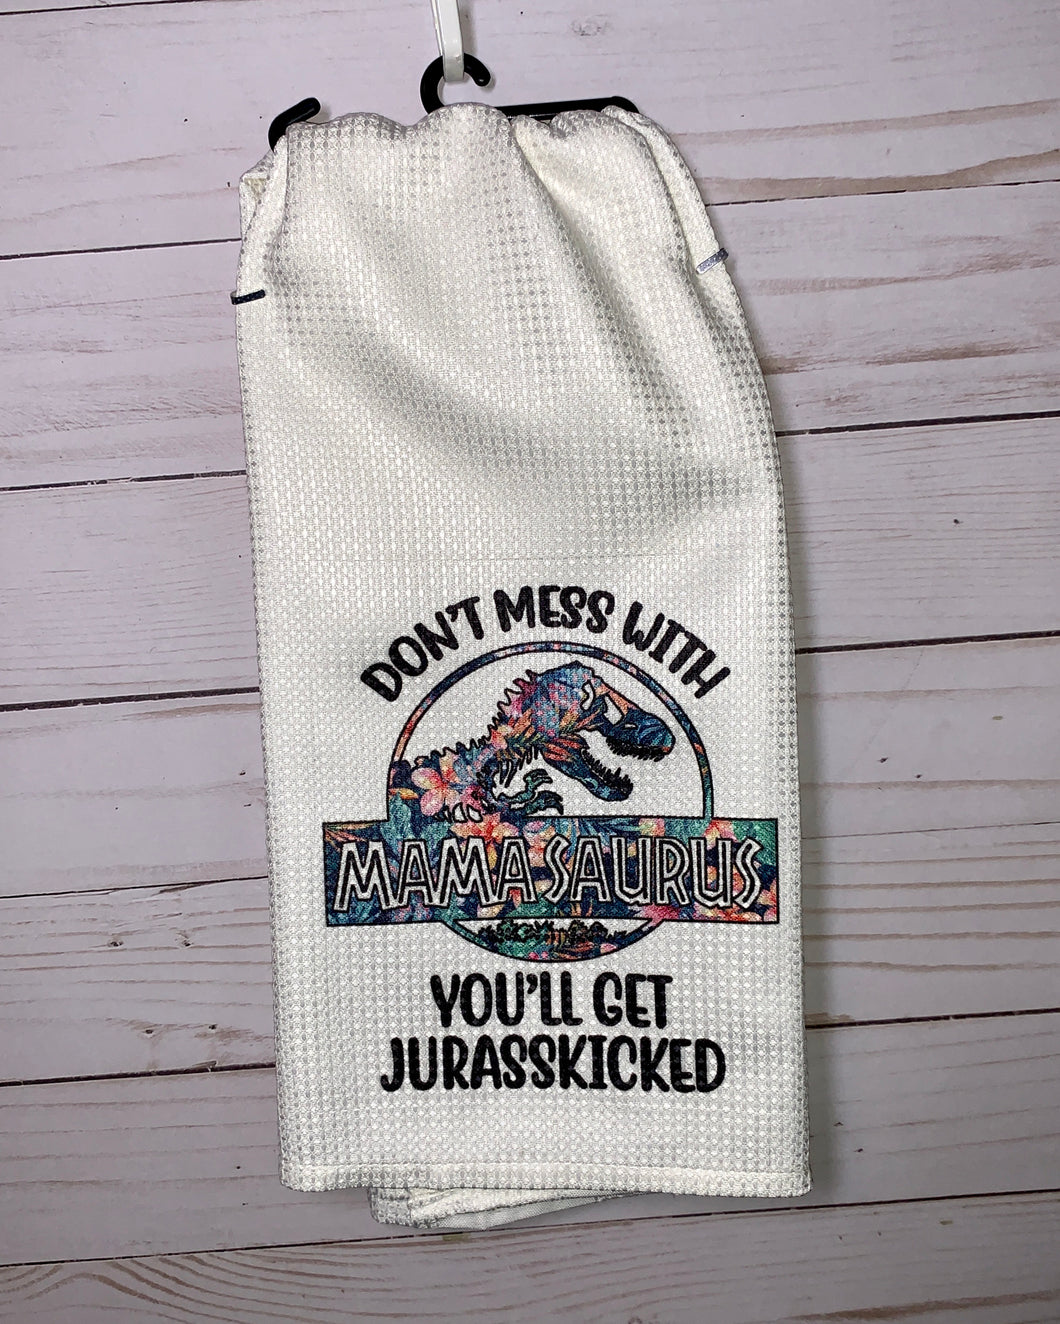 Don't Mess with Mamasaurus- Dish Towel - Jurassic Park Inspired